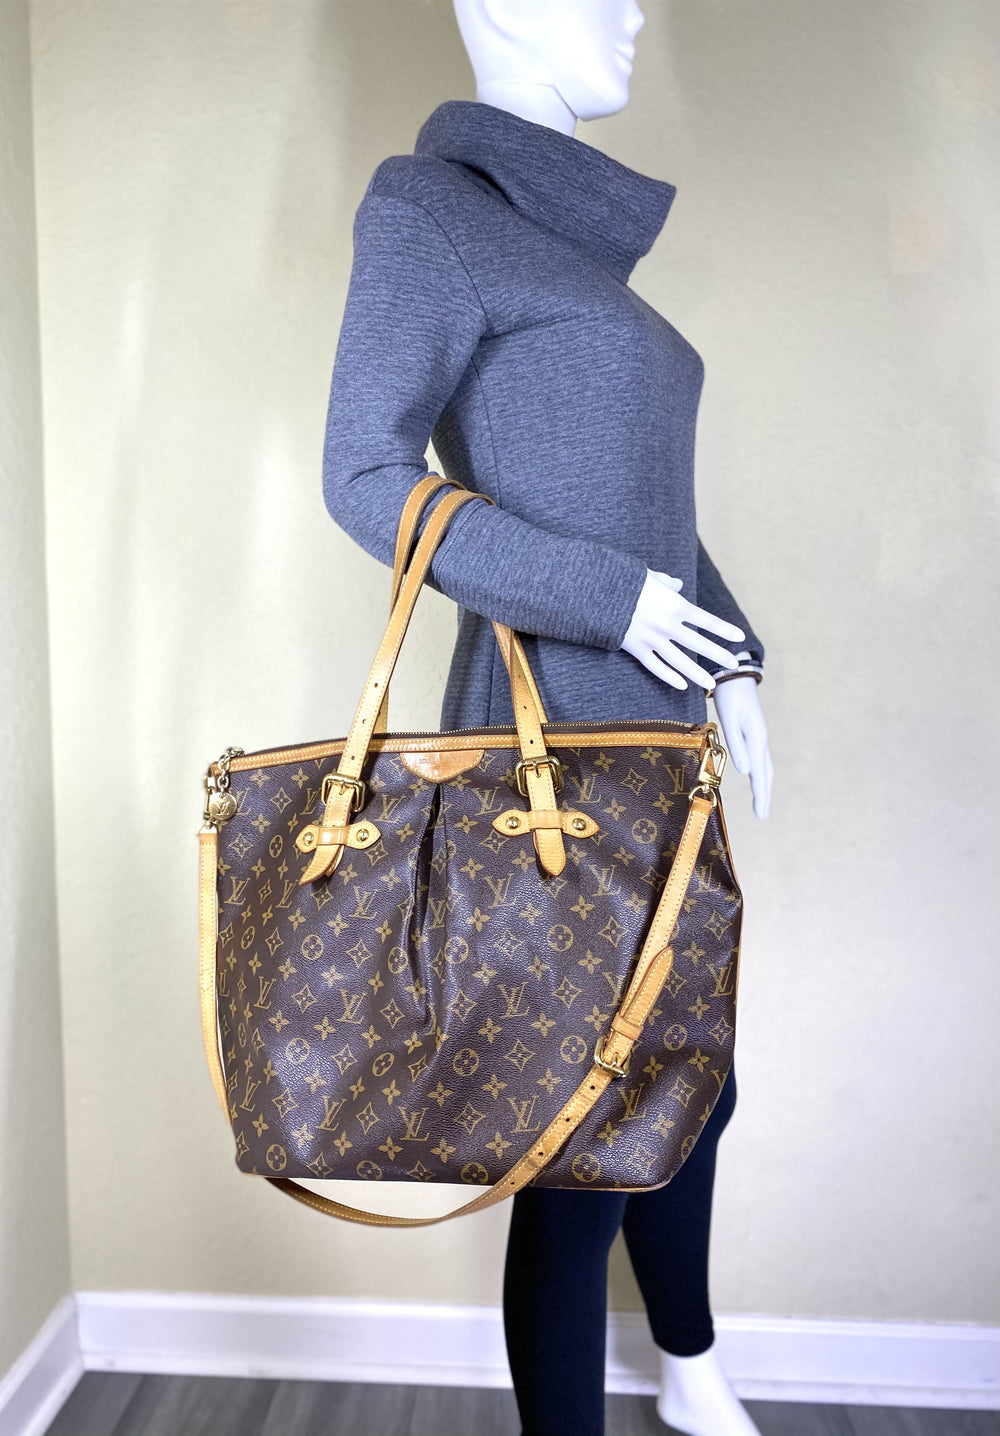 Vintage Palermo GM Monogram Tote with Strap